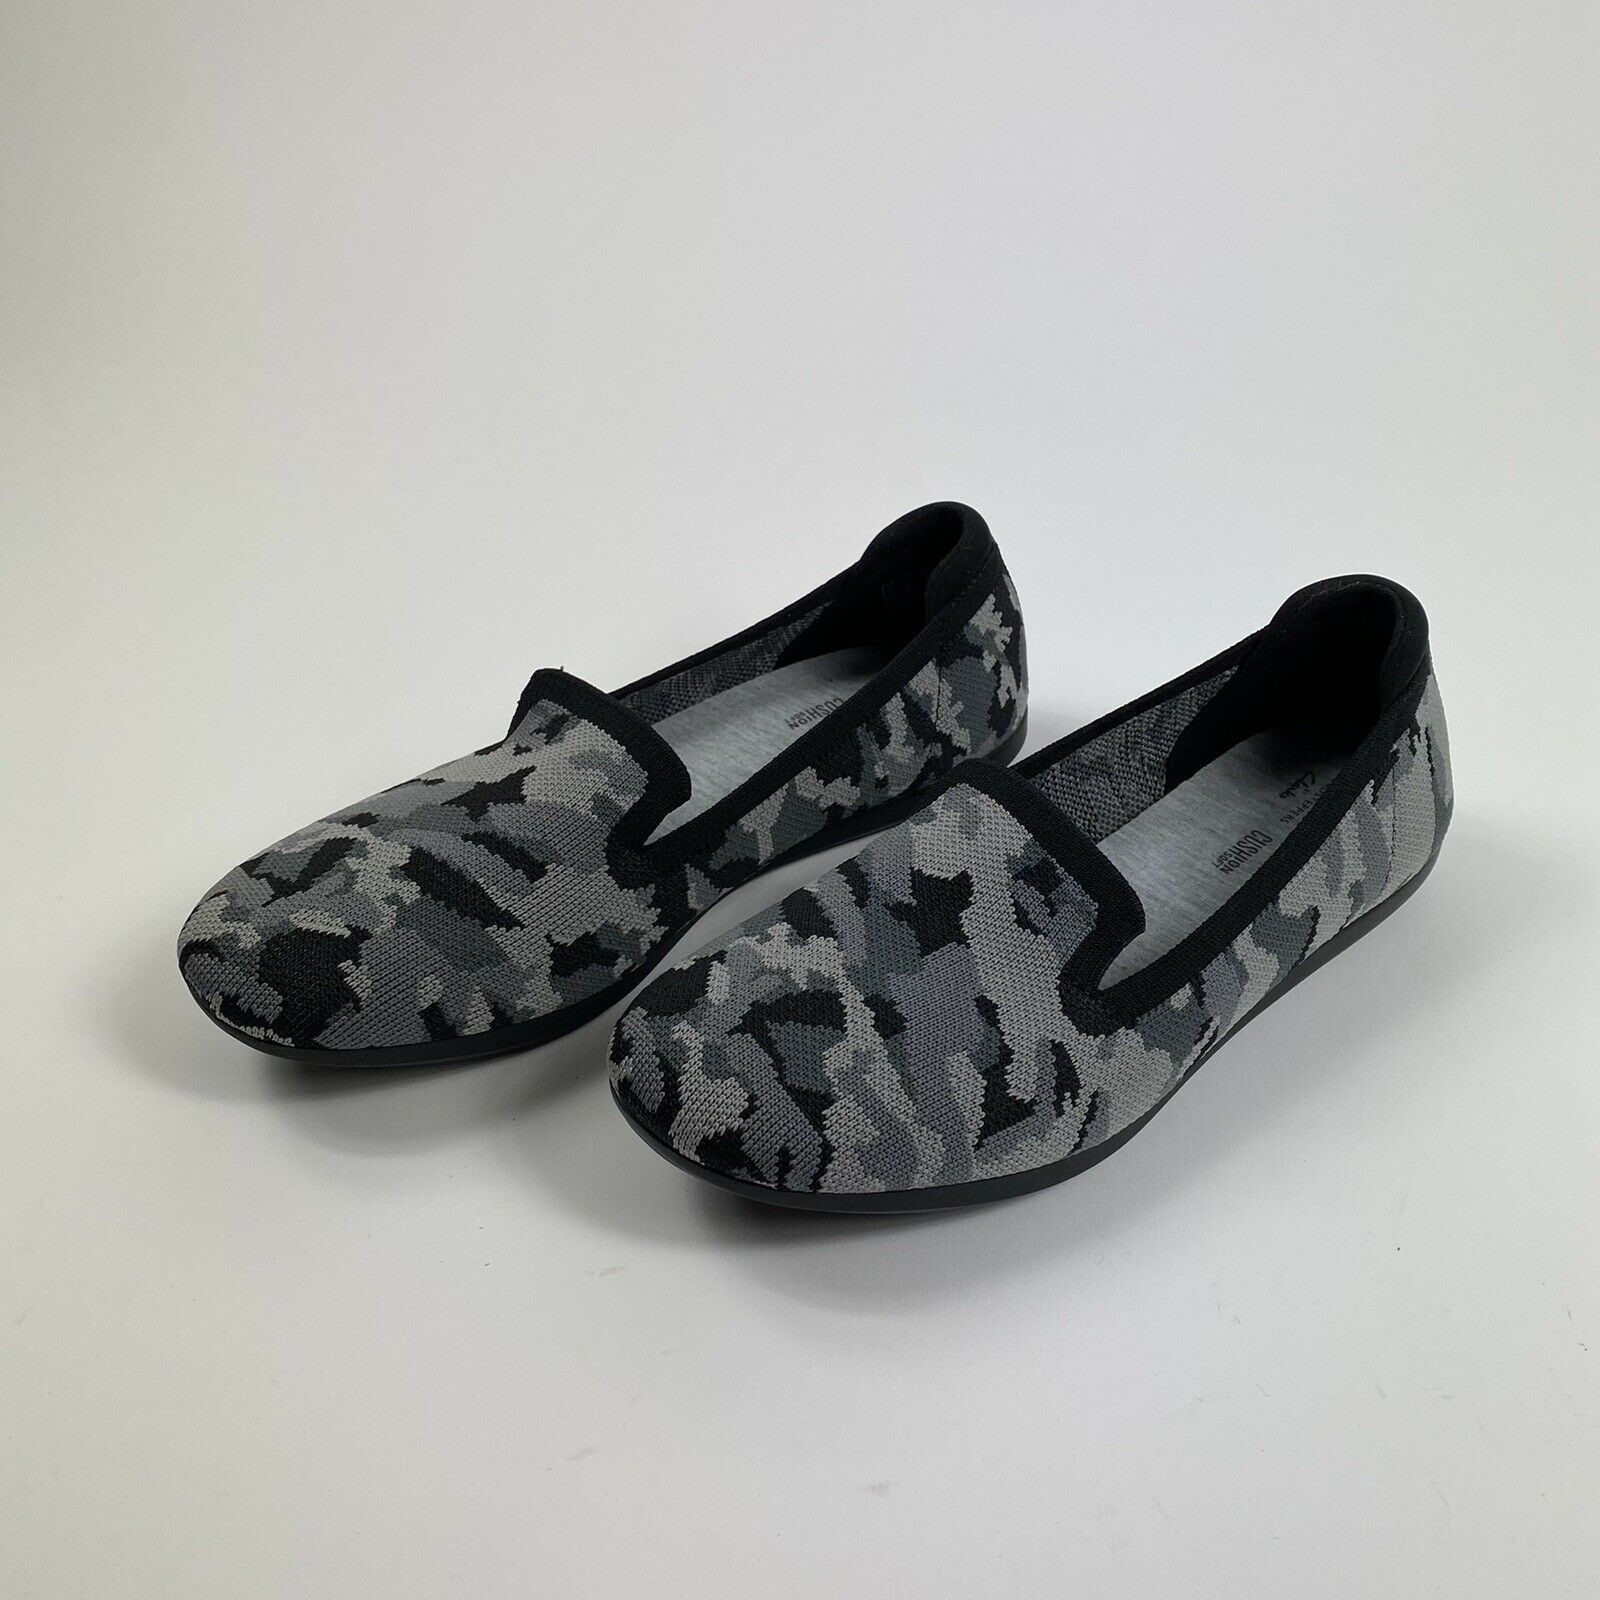 Cloudsteppers by Clarks Womens Carly Dream Washable Knit Slip-On Grey Camo 8M